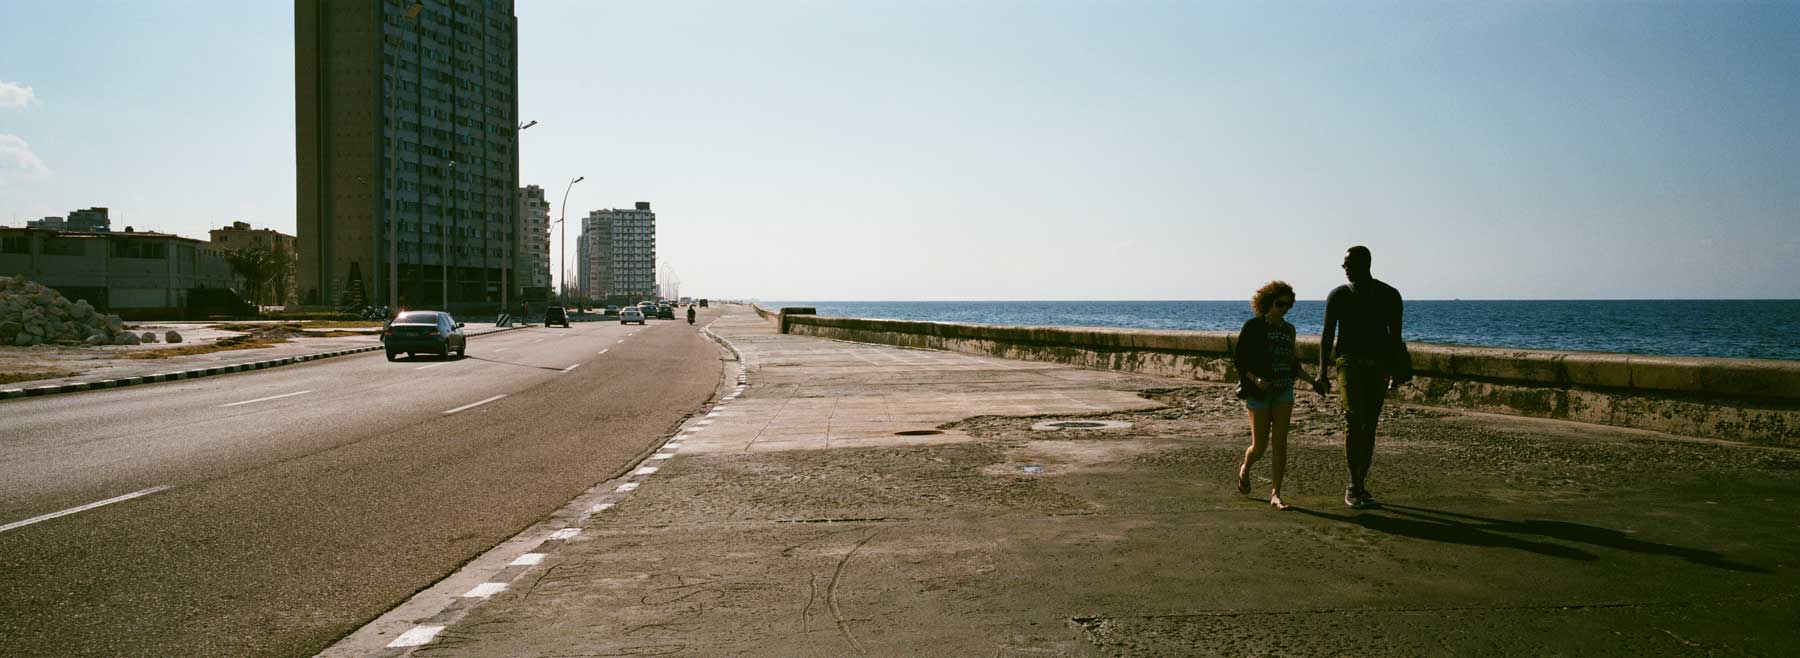 hasselblad-xpan-ii-review-hassel-rangefinder-camera-film-camera-review-photography-pano-panorama-panoramic-45mm-f4-havana-malecon-seaside-waterfront-cuba-couple-walking-down-the-street